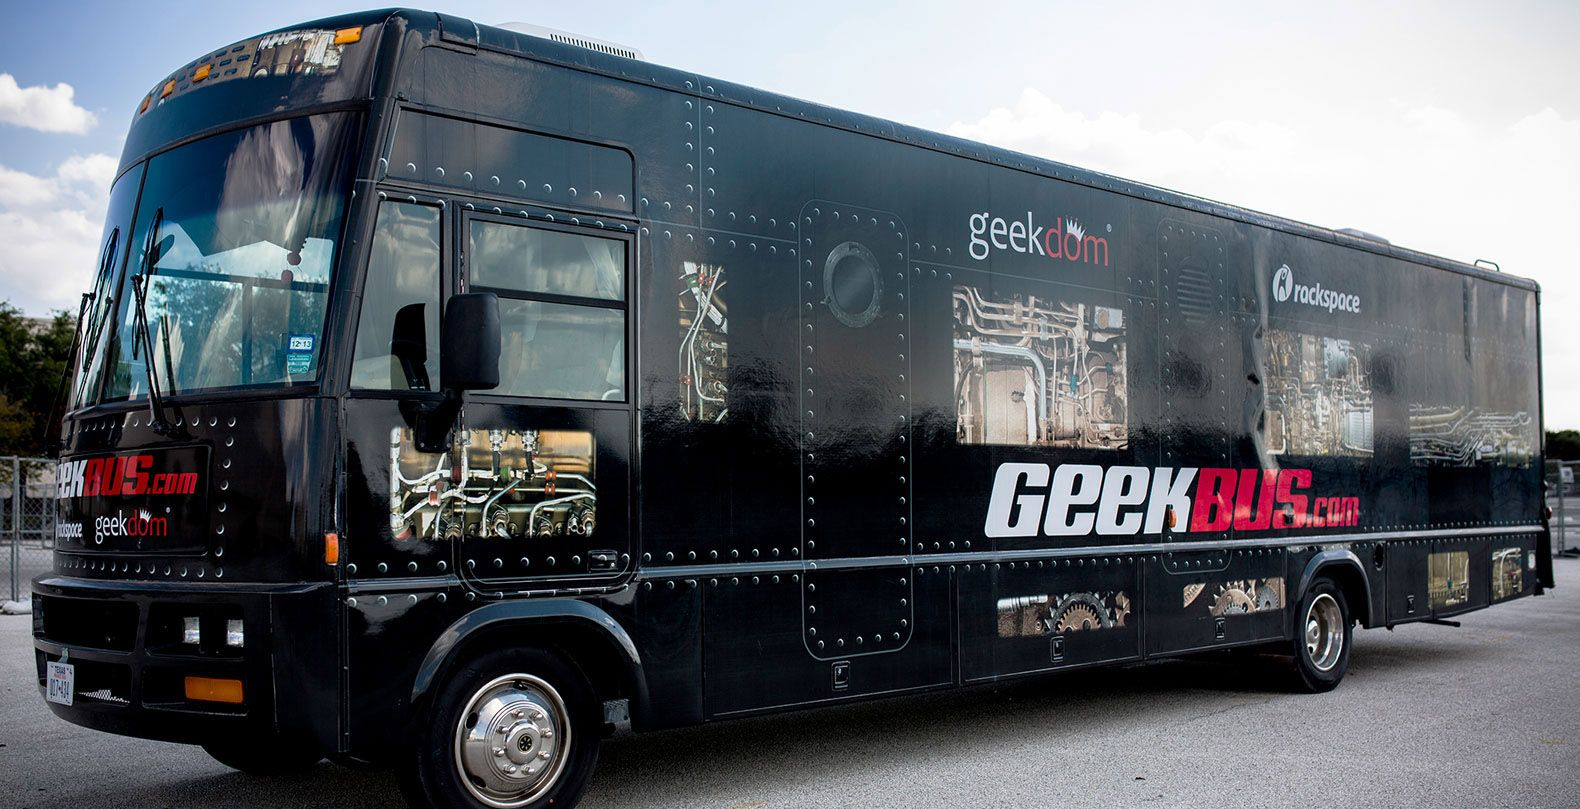 The Geekbus serves as a mobile STEM lab in Texas, giving underserved K–12 students the opportunity to learn about robotics, renewable energy, and engineering.